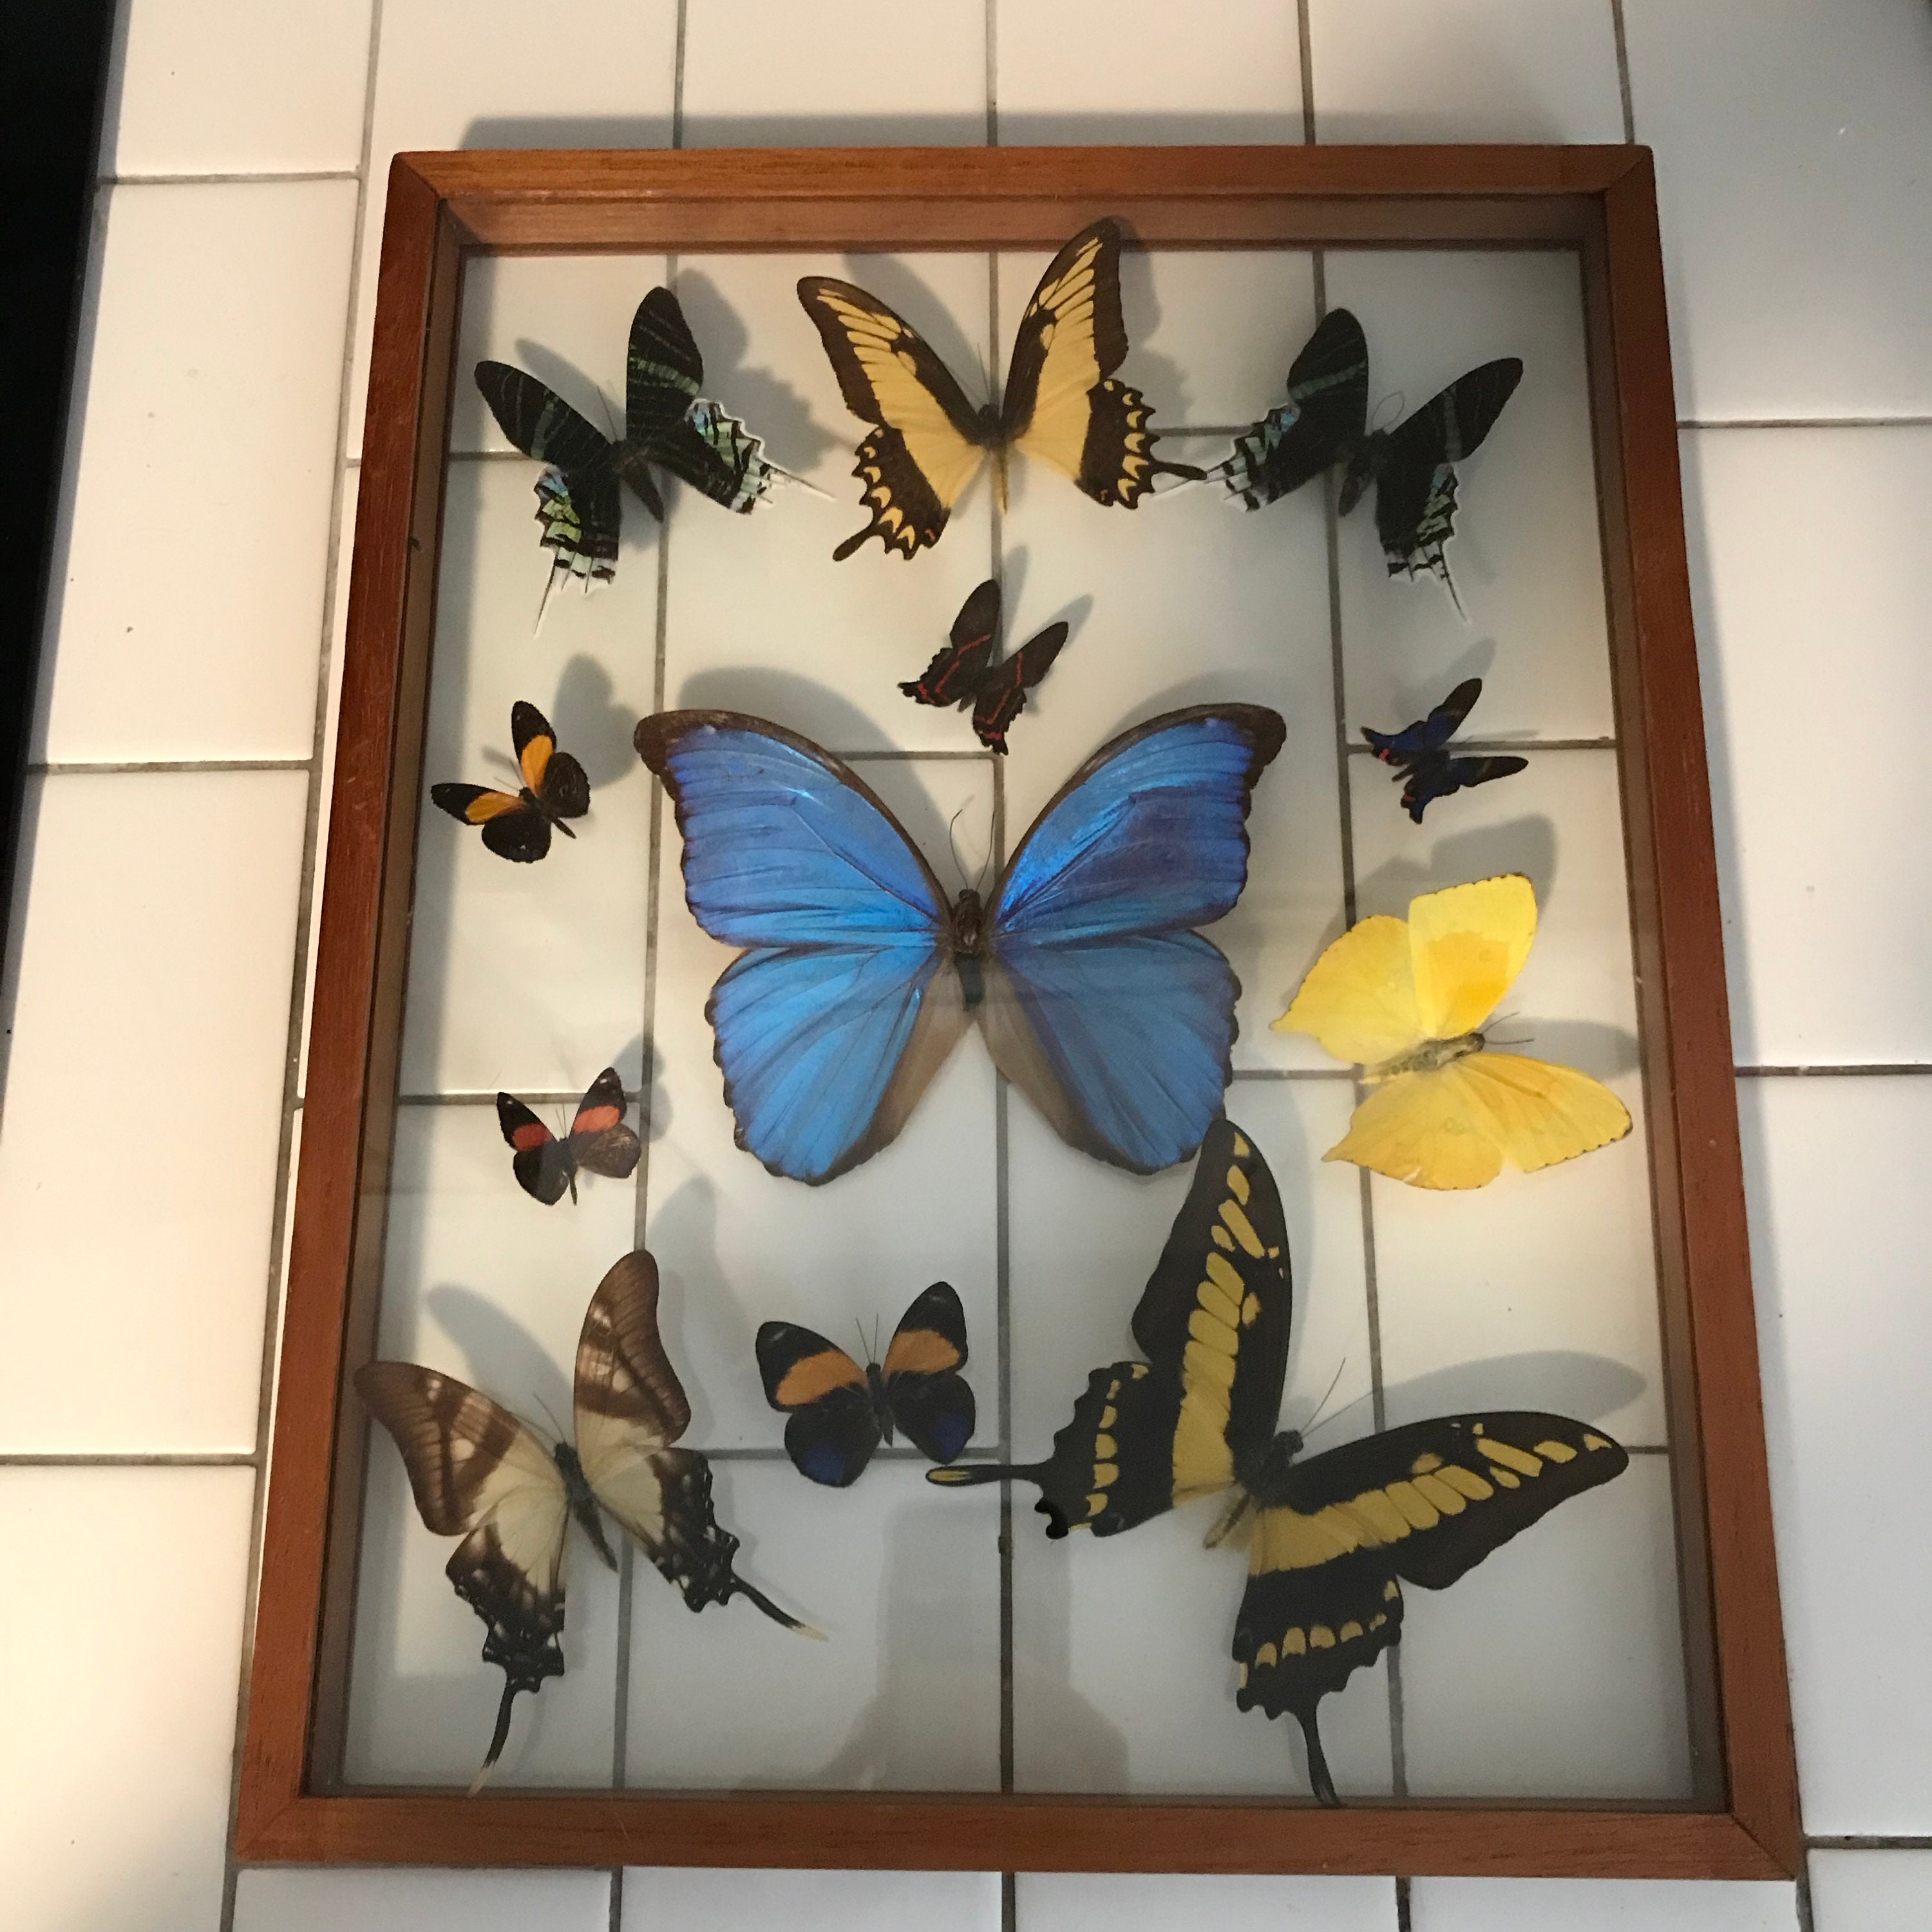 Vintage butterfly collection beautiful detailed and colorful taxidermy wall hanging double sided glass wooden frame curiosities collectible